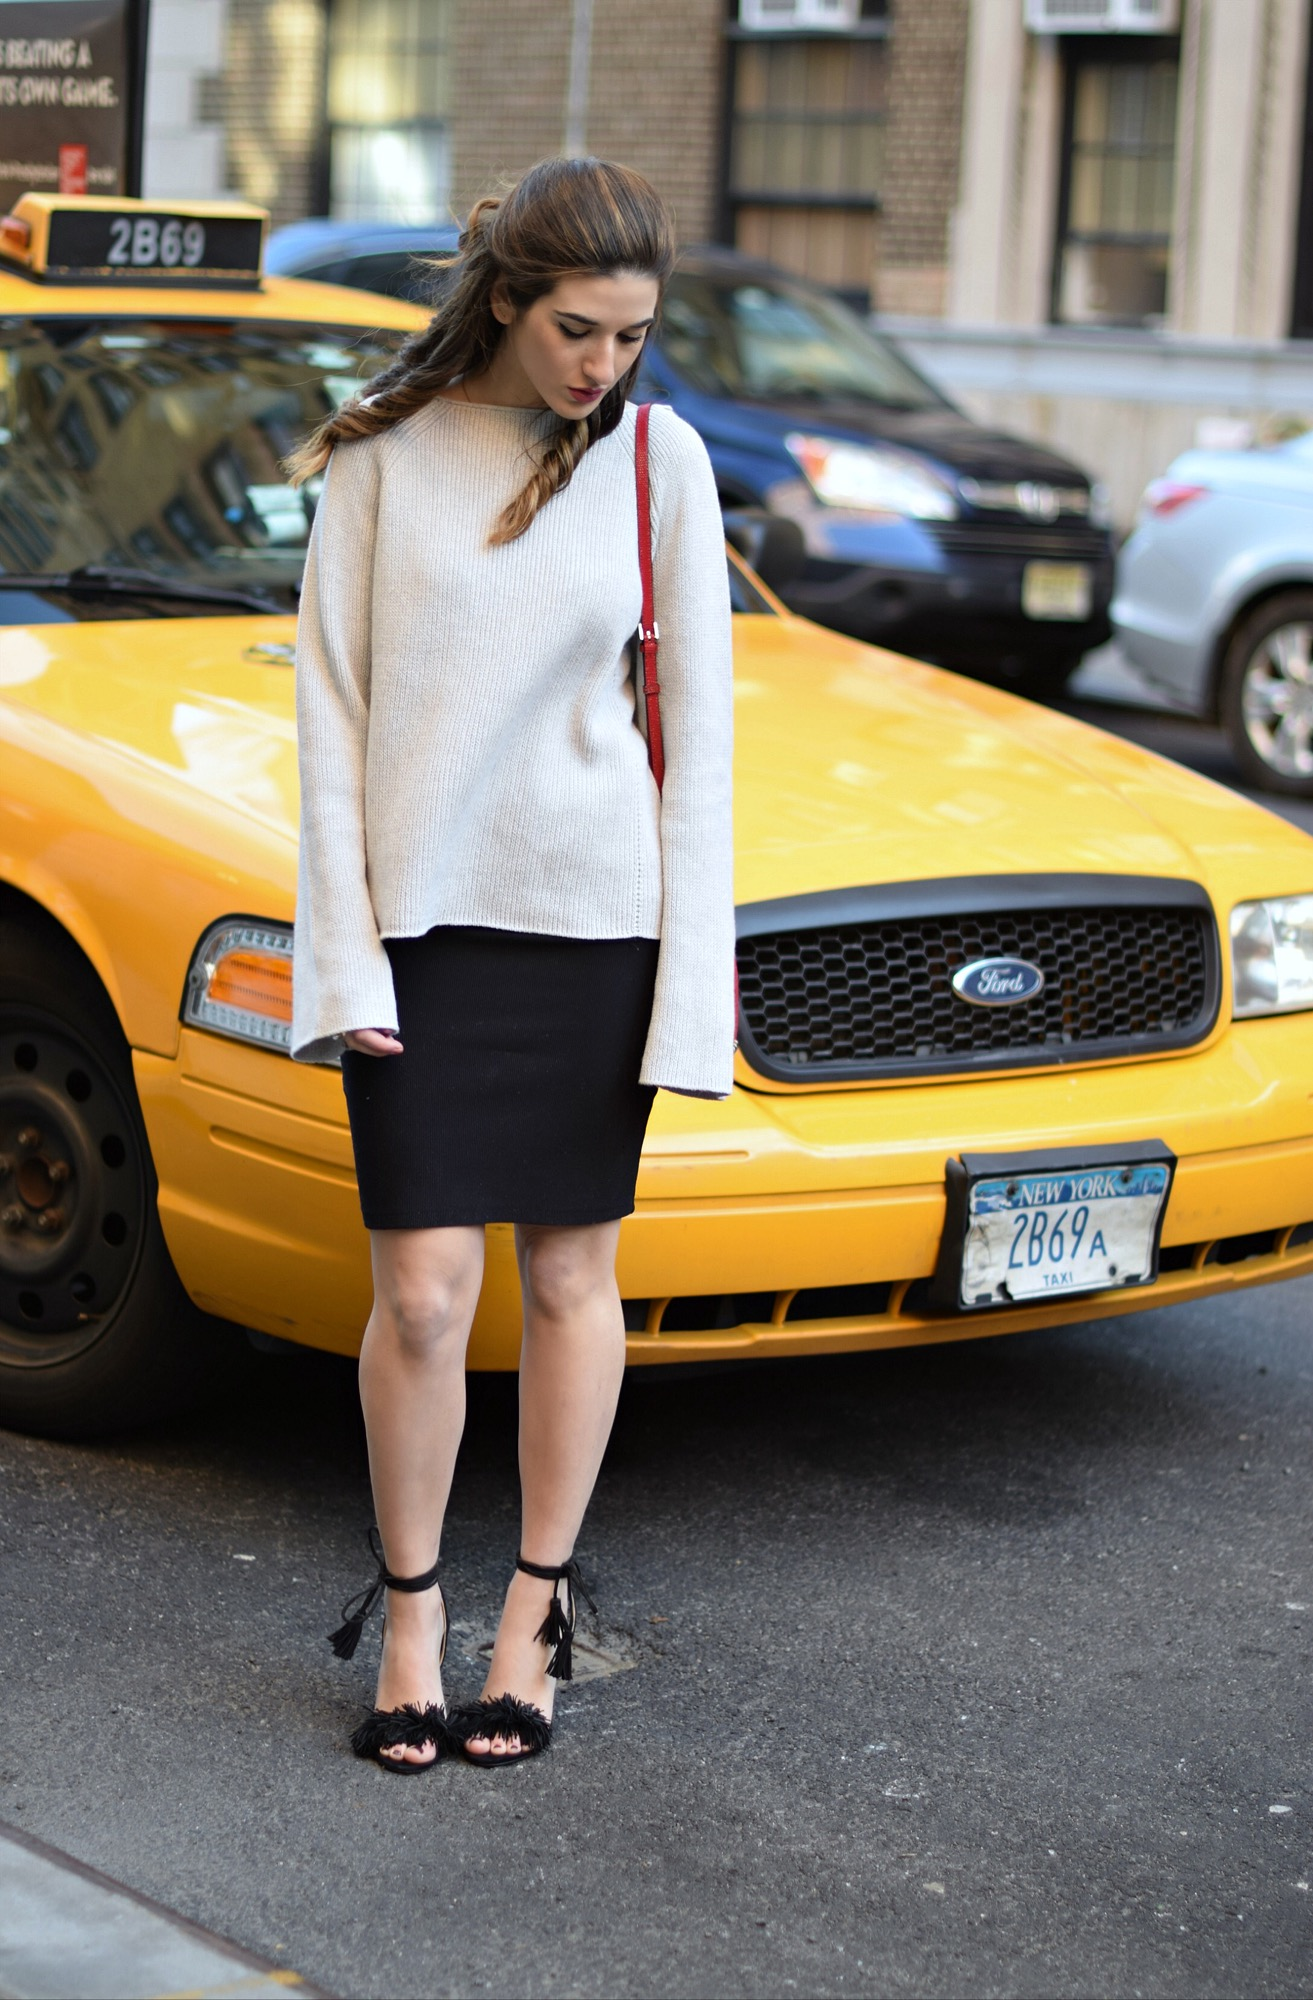 Helmut Lang Sweater Ivanka Trump Fringe Sandals Louboutins & Love Fashion Blog Esther Santer NYC Street Style Blogger Outfit OOTD Mini Skirt Summer Beautiful Photoshoot Model Chunky Knit Designer Clothes Shoes Nordstrom Forever 21 Shopping Red Bag DVF.JPG